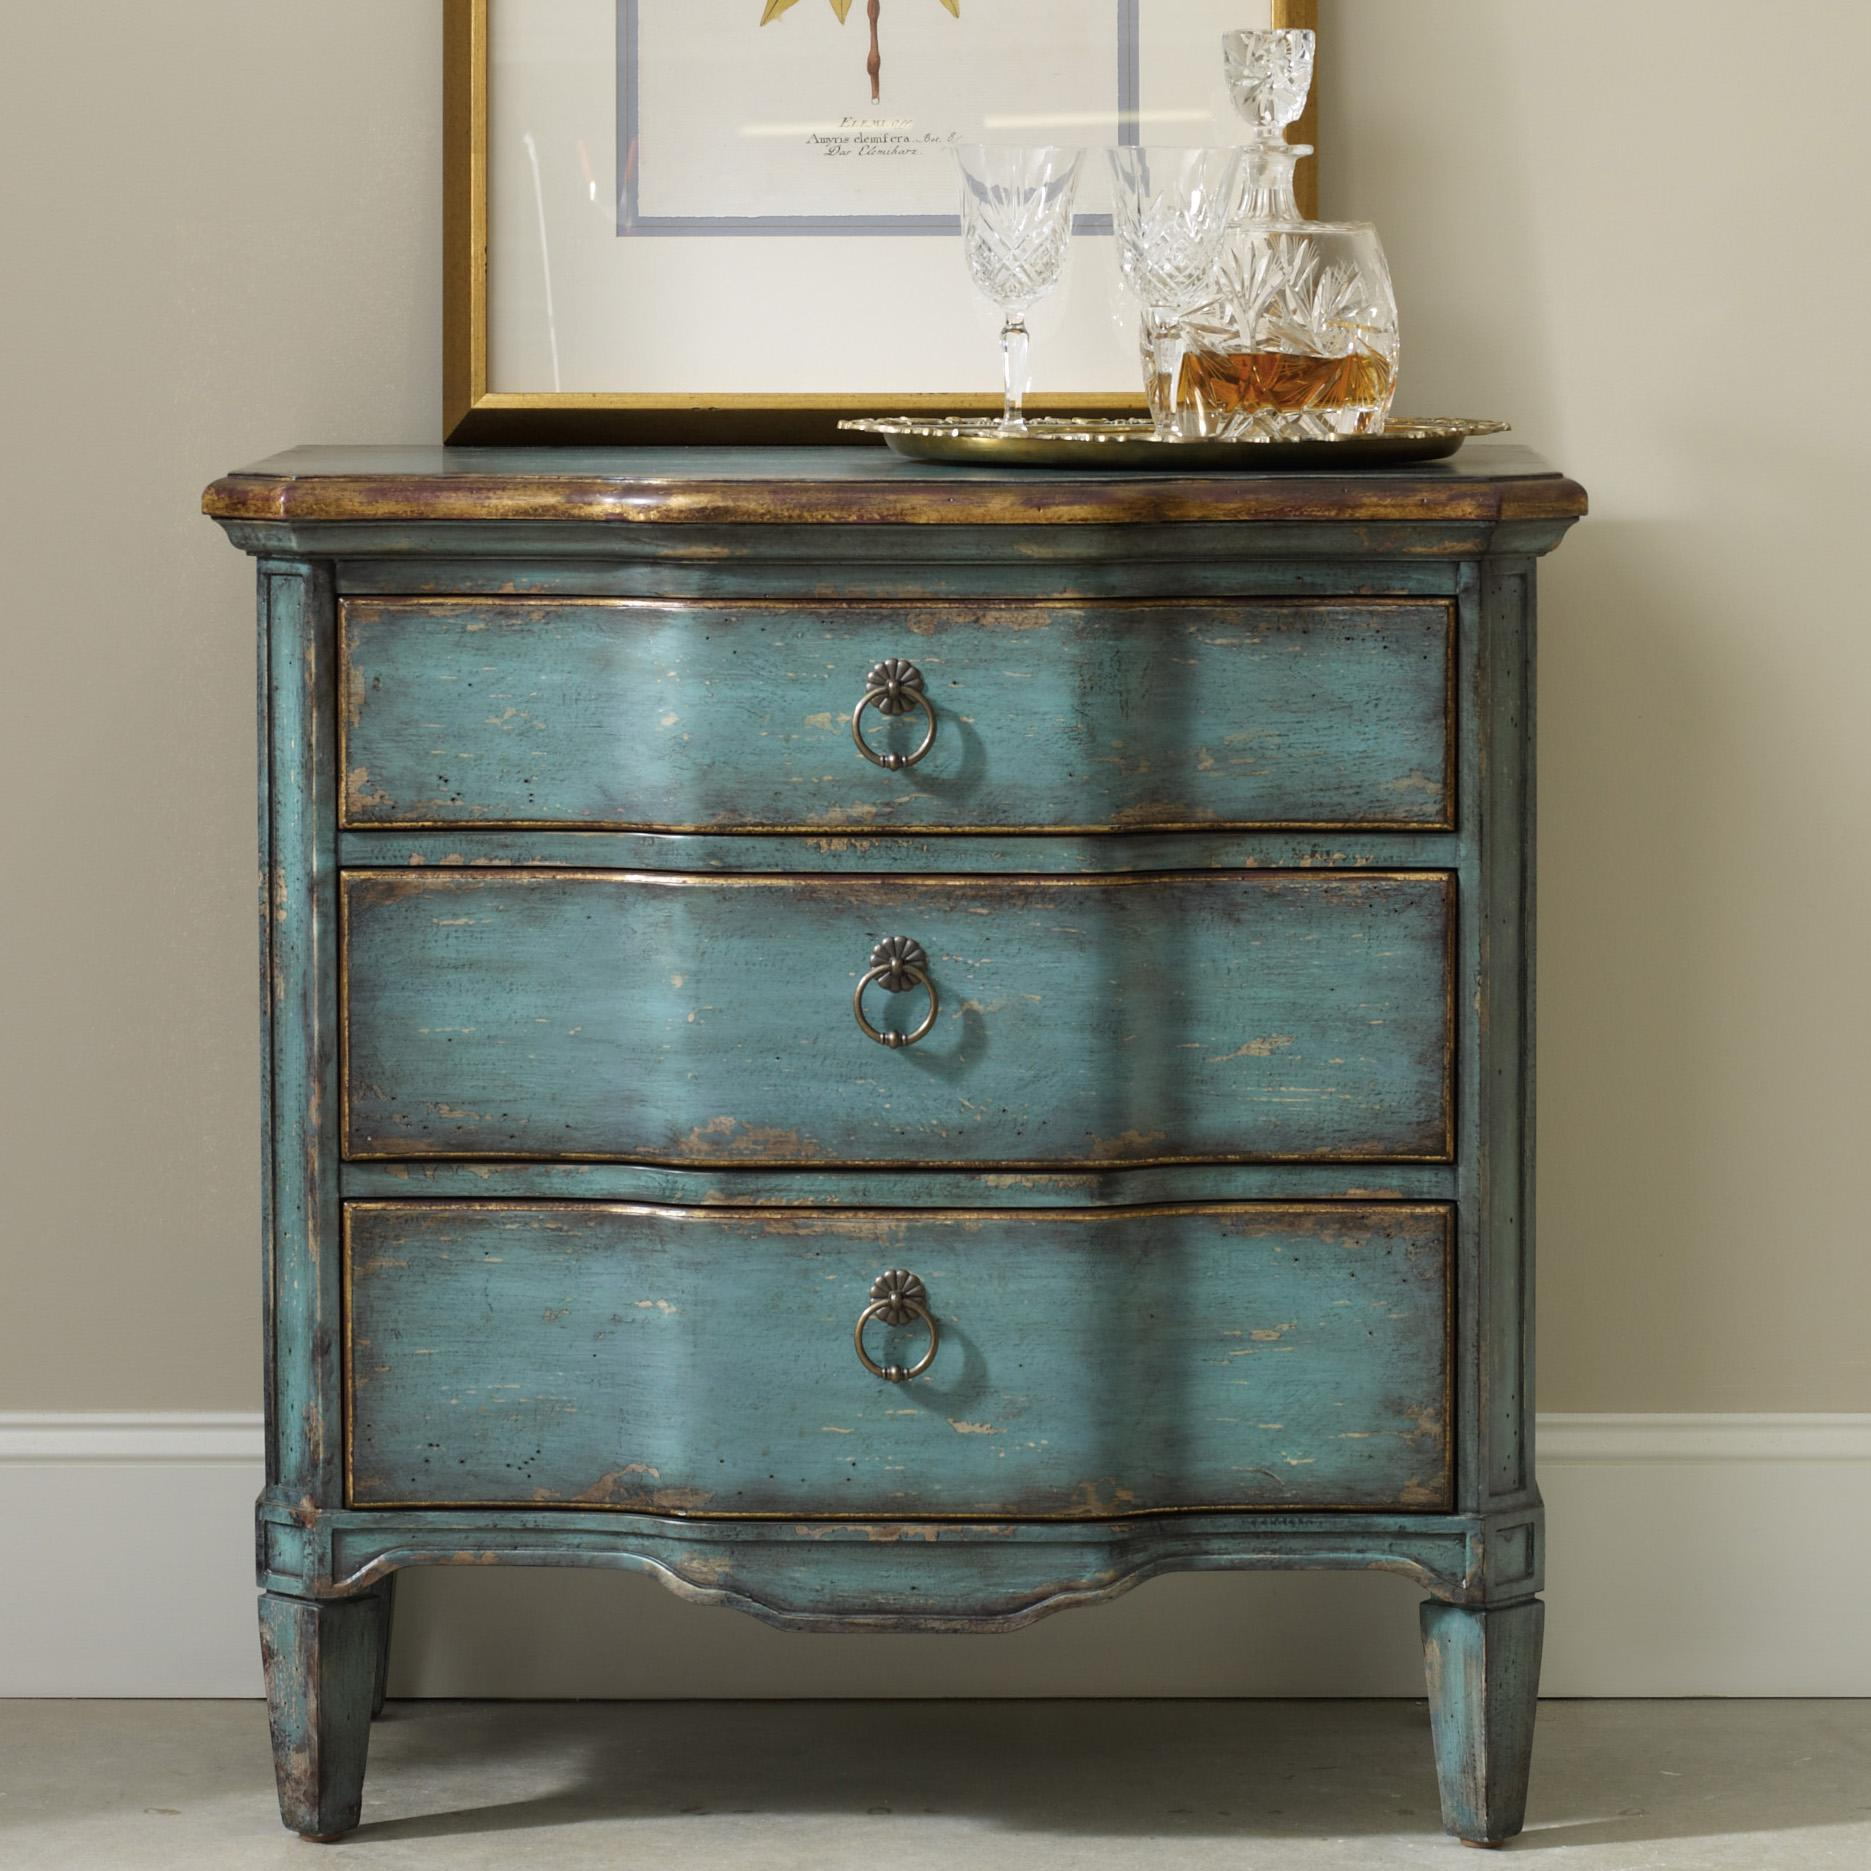 Hooker Furniture Living Room Accents Three Drawer Turquoise Chest - Item Number: 500-50-878